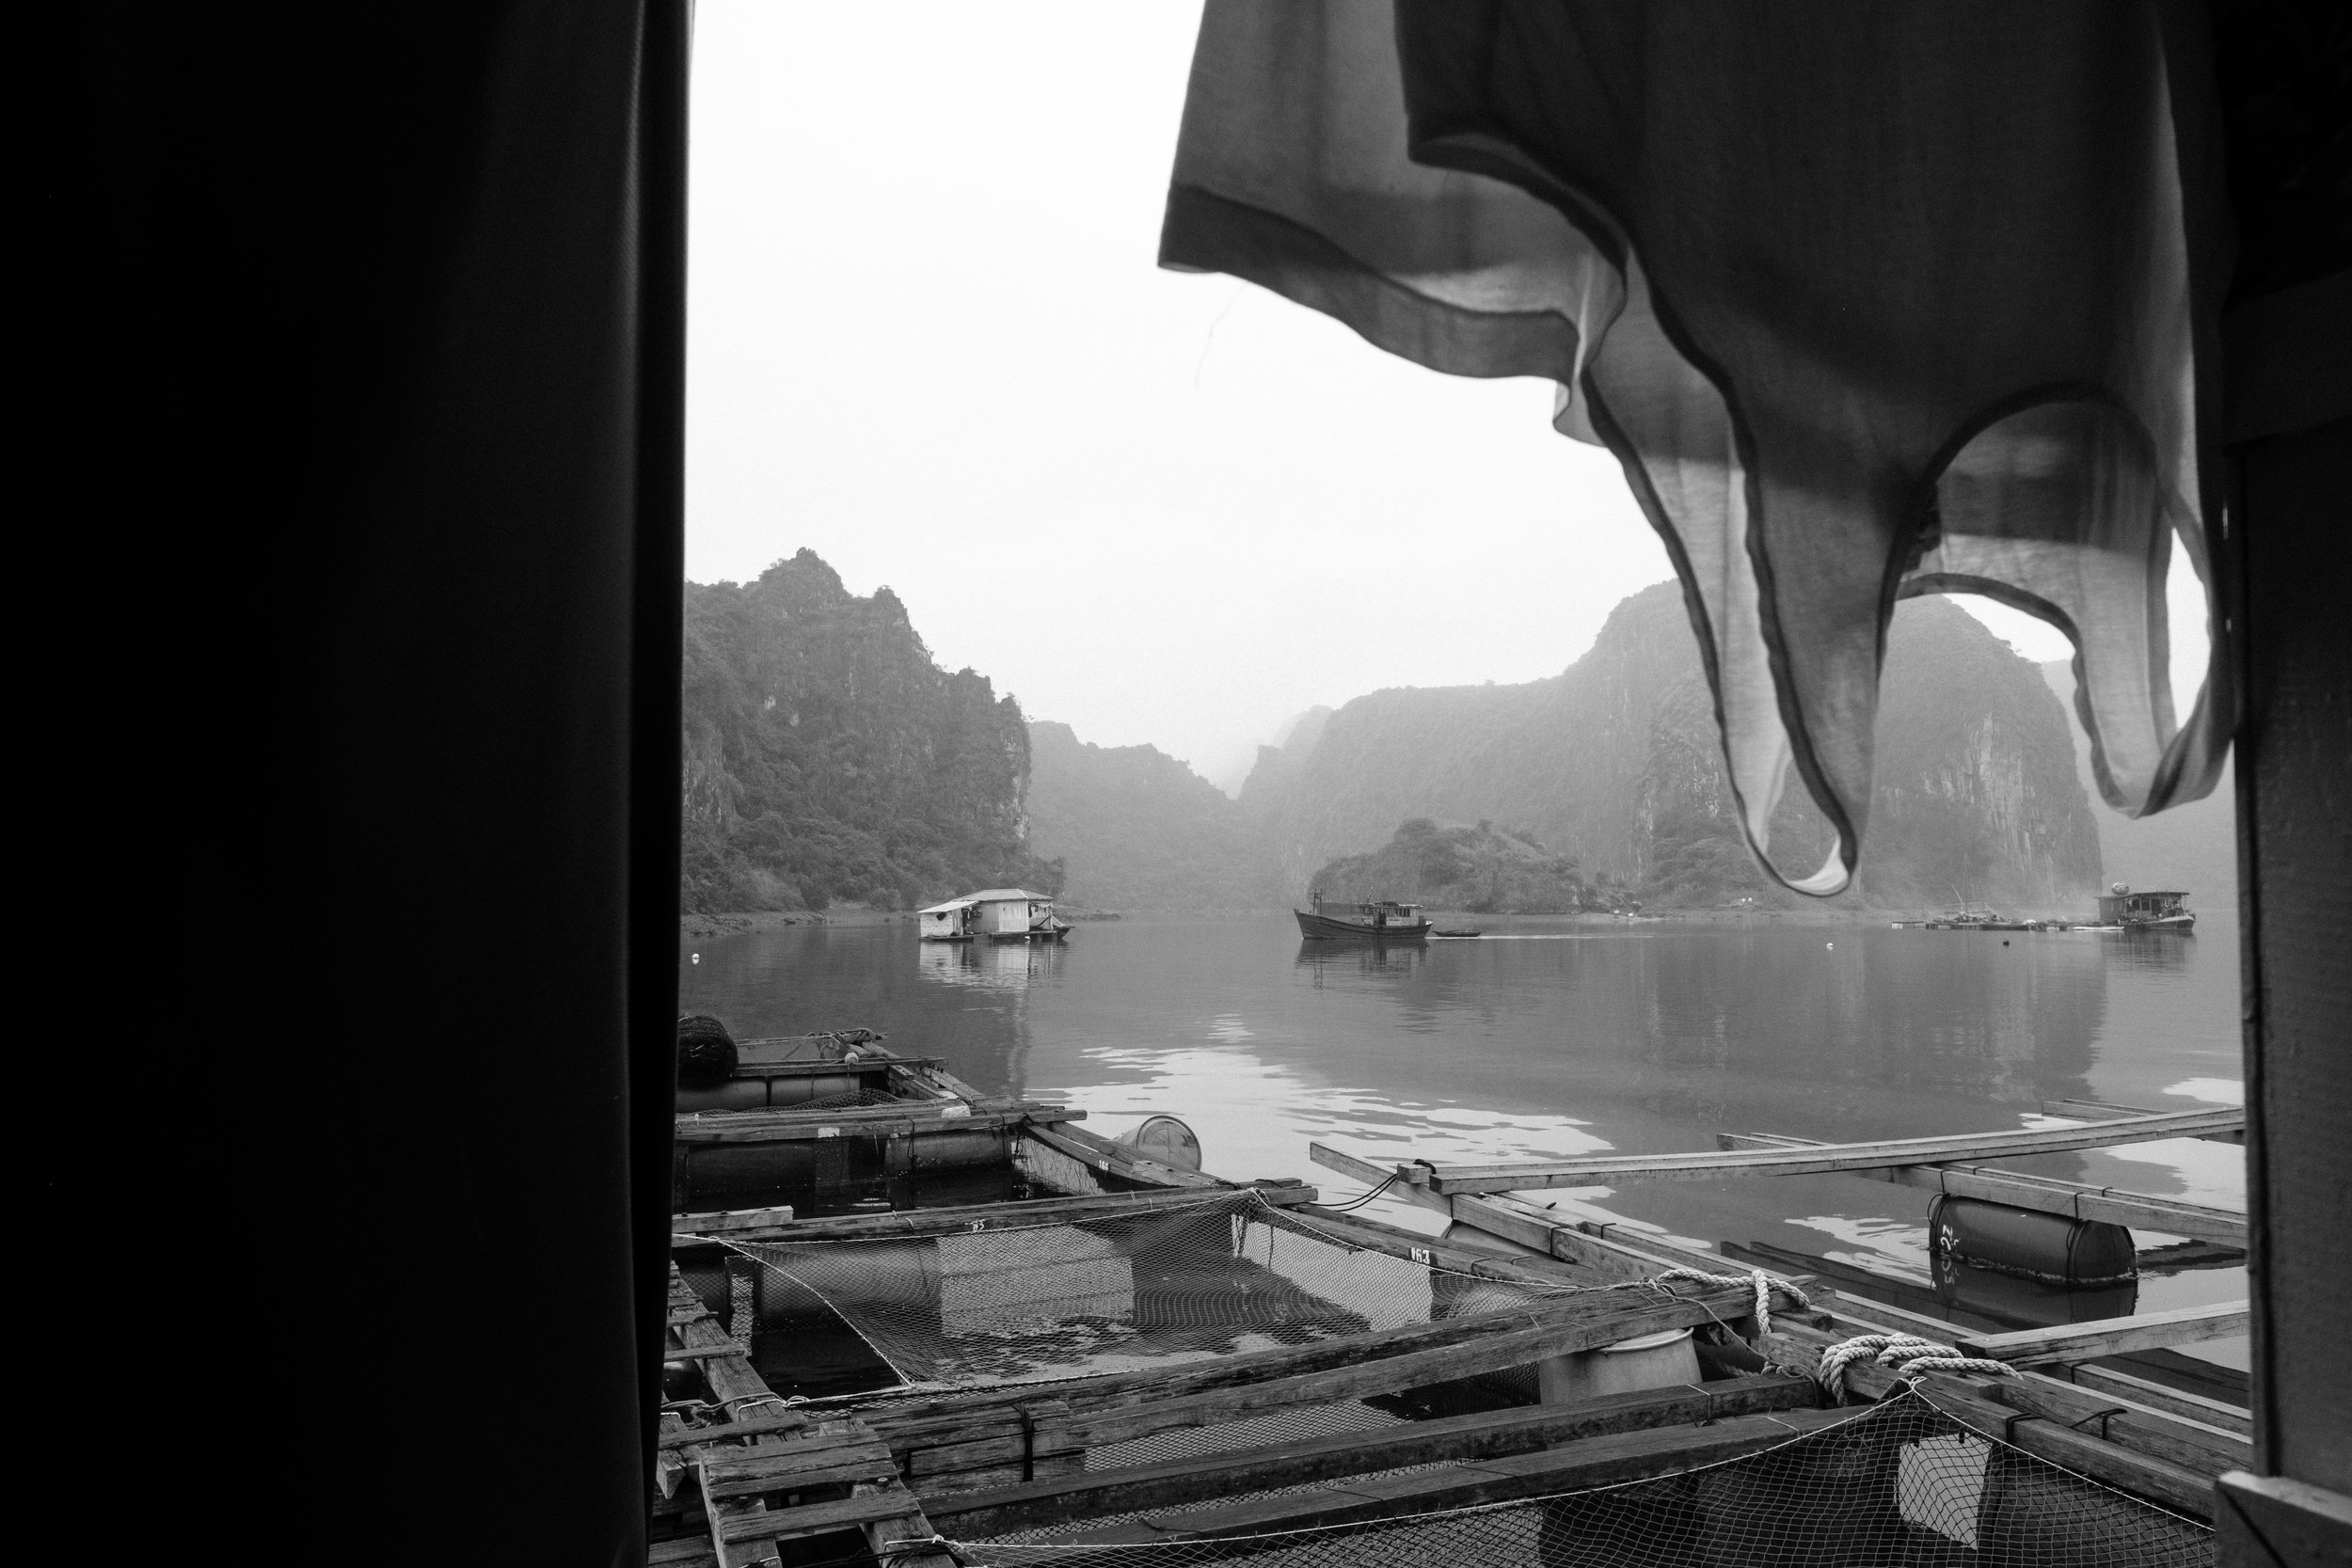 Clothes are hung out to dry in floating fishing village near Cat Ba Island on Lan Ha Bay in Vietnam